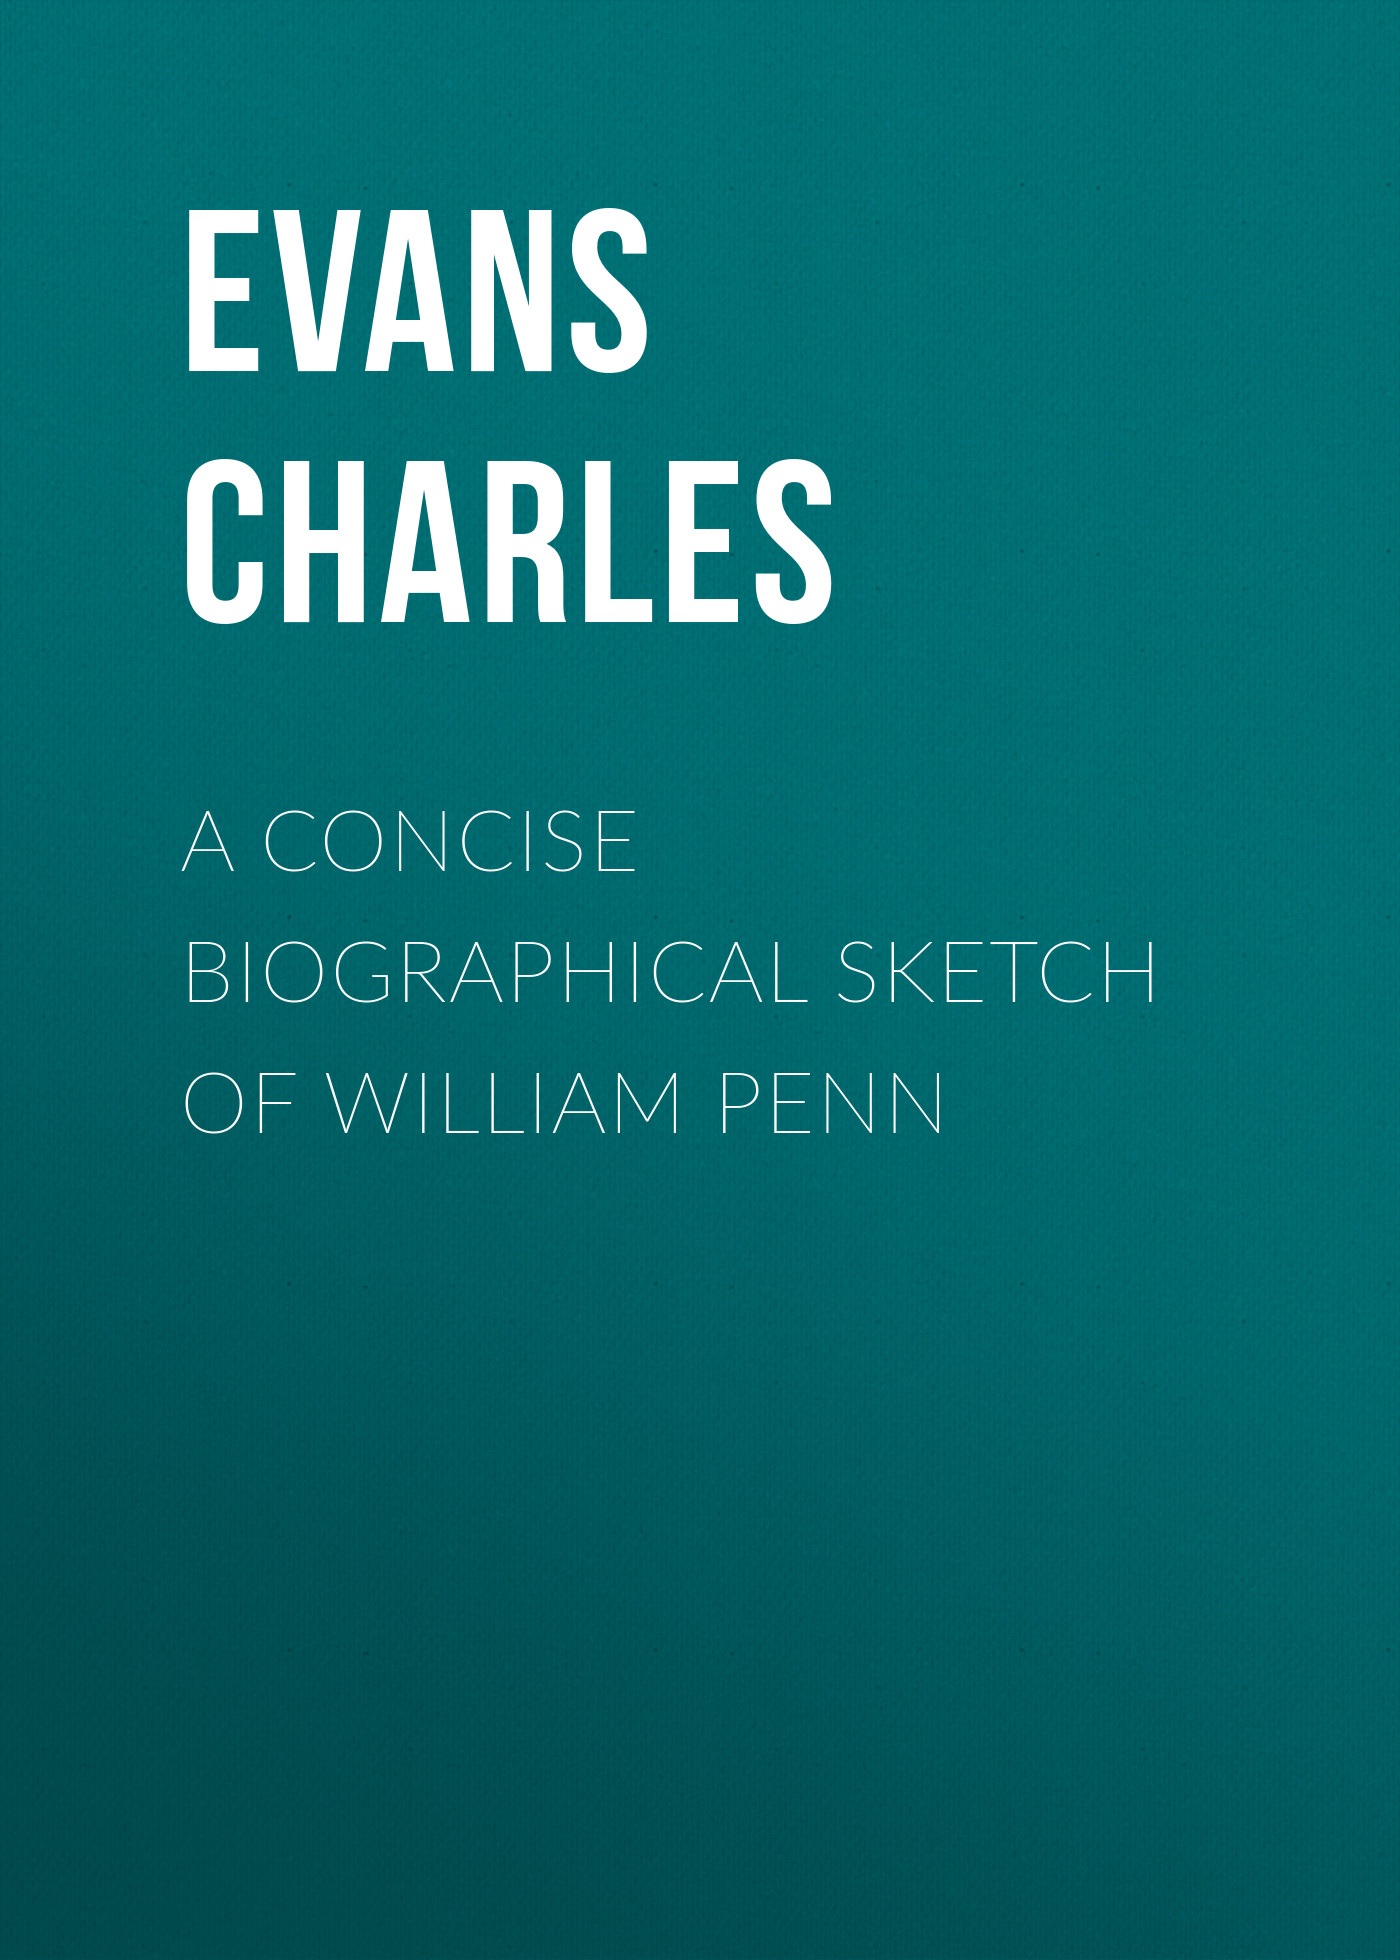 Evans Charles A Concise Biographical Sketch of William Penn william penn cresson the cossacks